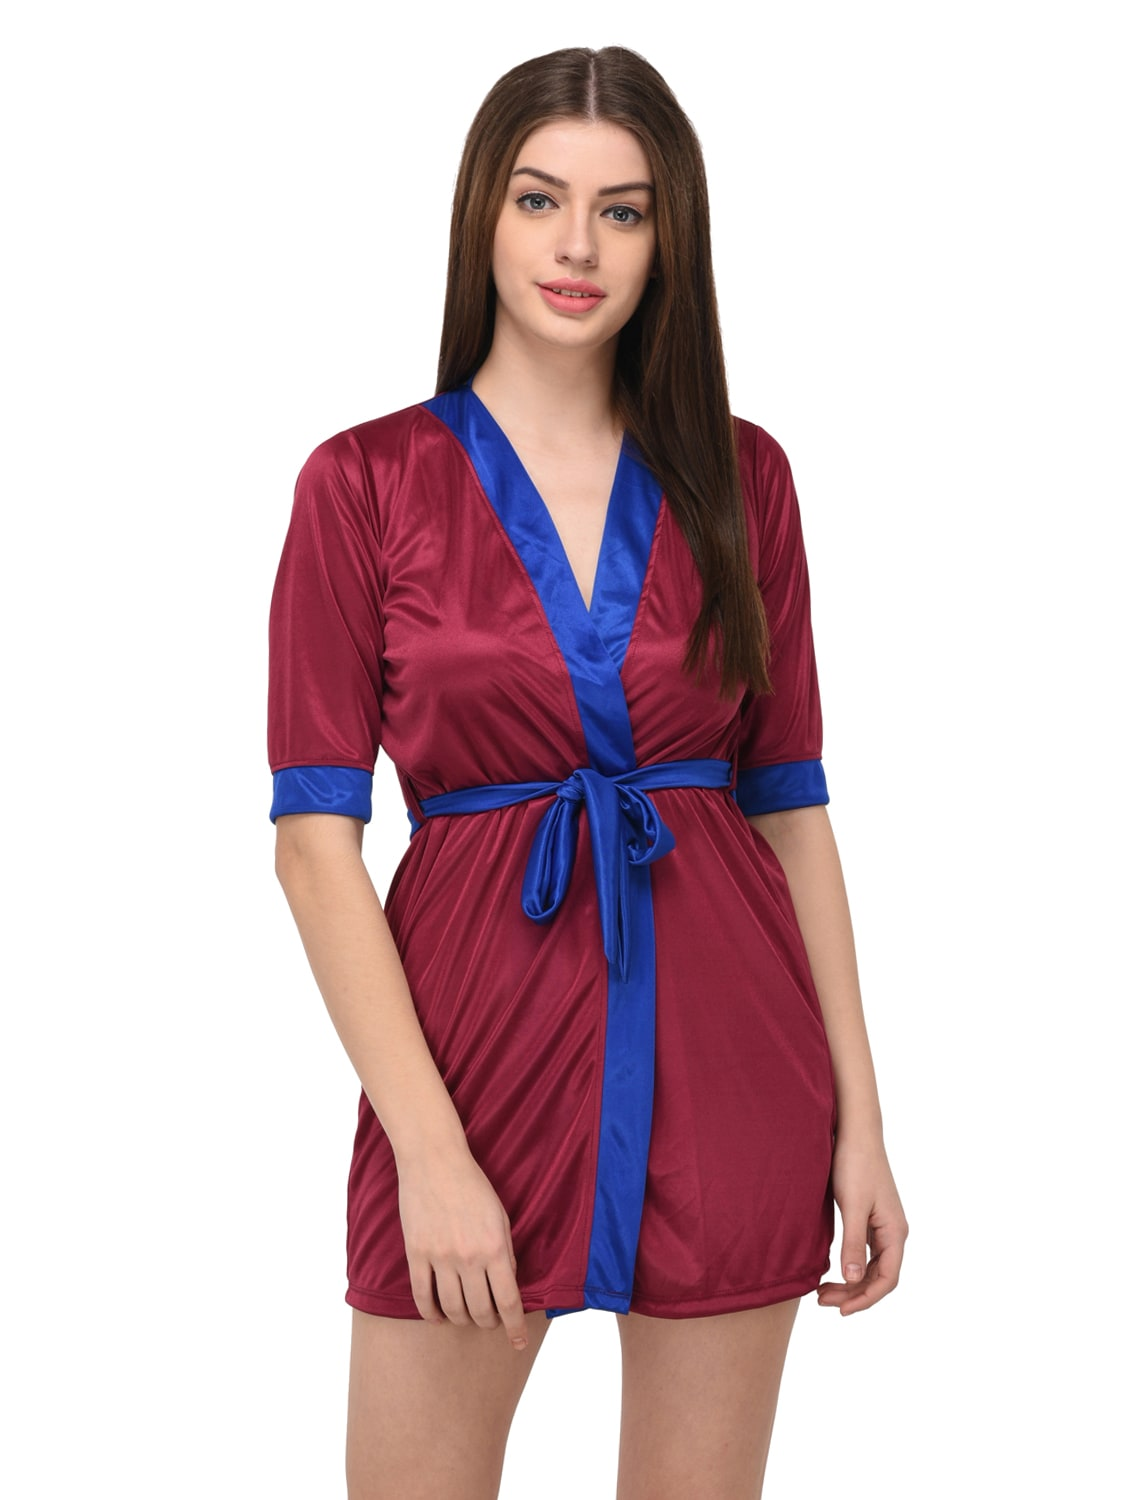 f8f90add10f5 Buy Pink Satin Sleepwear Robe With Bra Panty Set for Women from You Forever  for ₹428 at 57% off